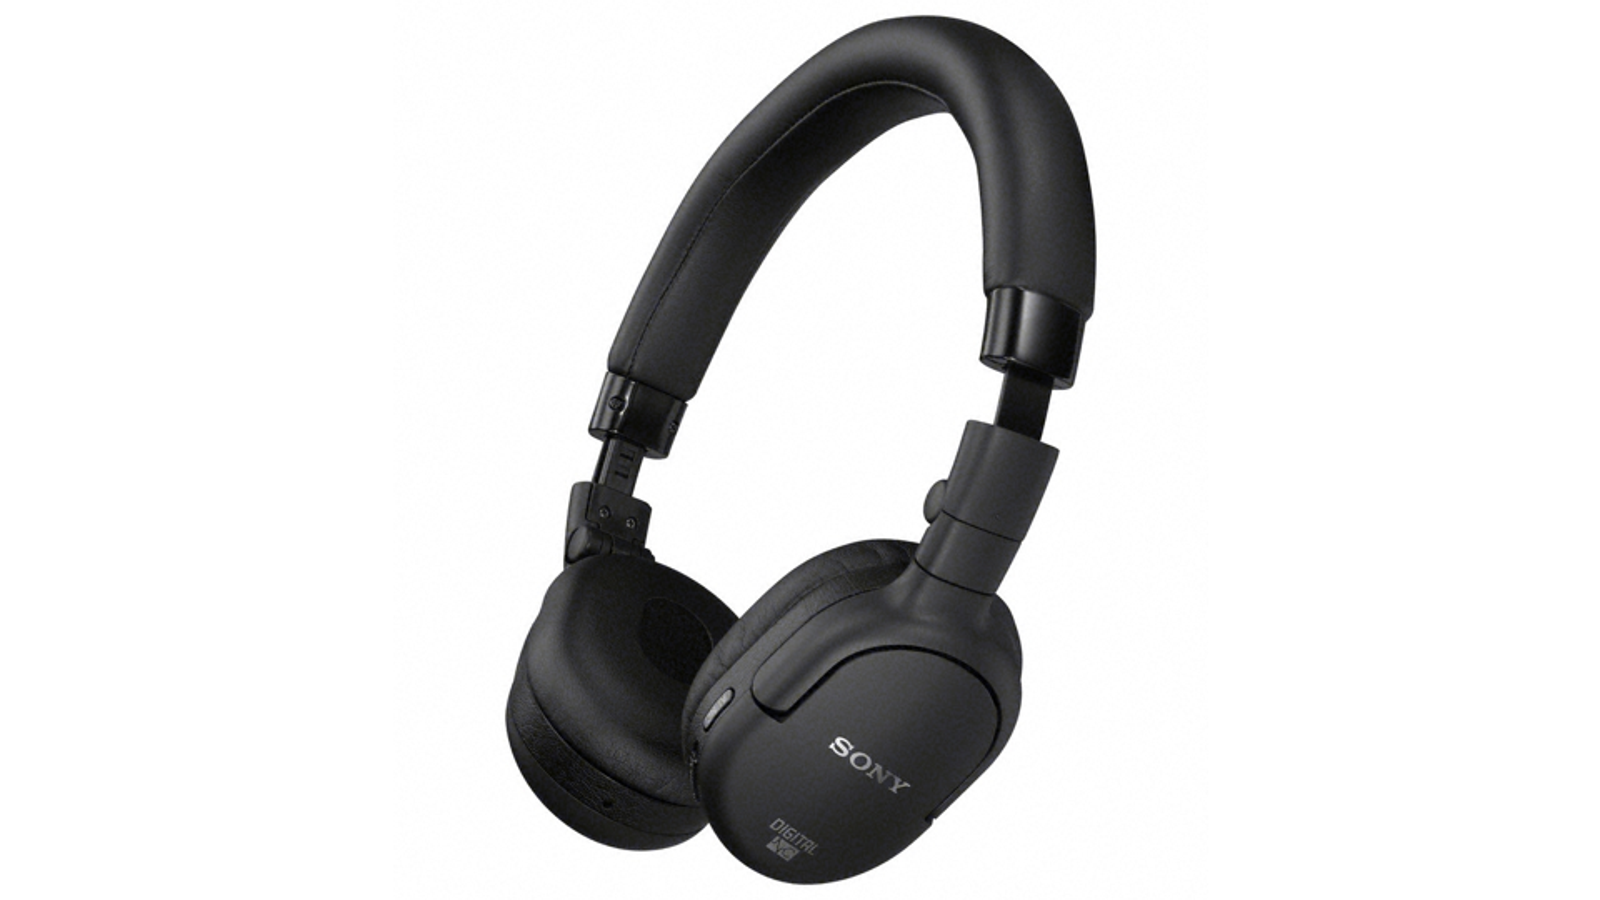 qcy bluetooth headphones pro